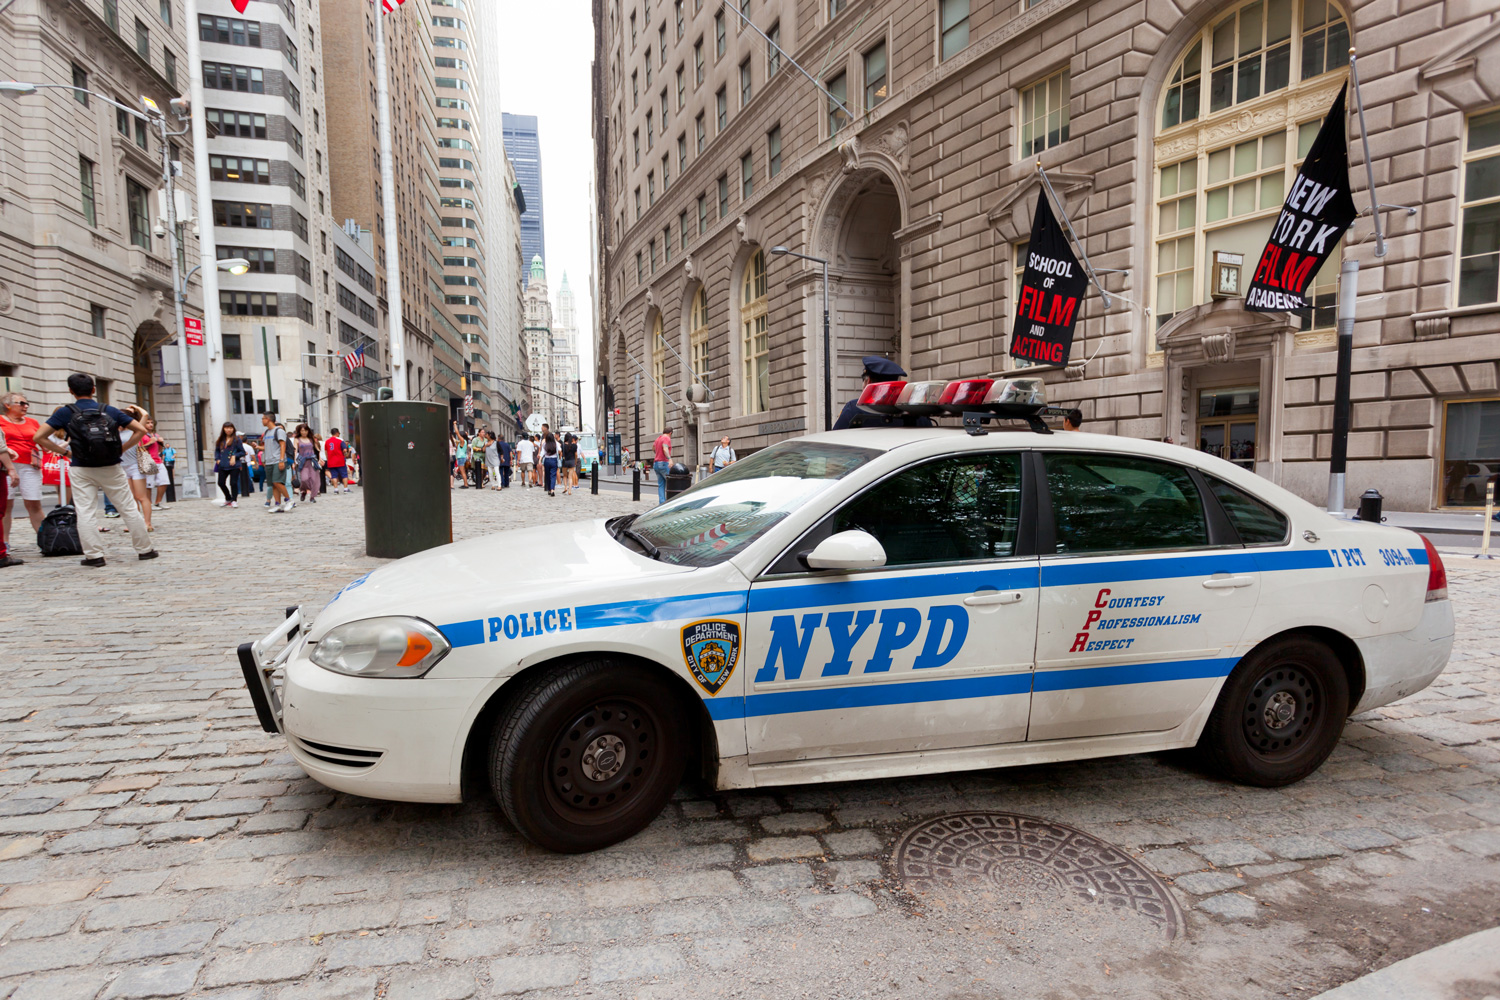 Big Brother Is Watching New York To Fight Terrorism With